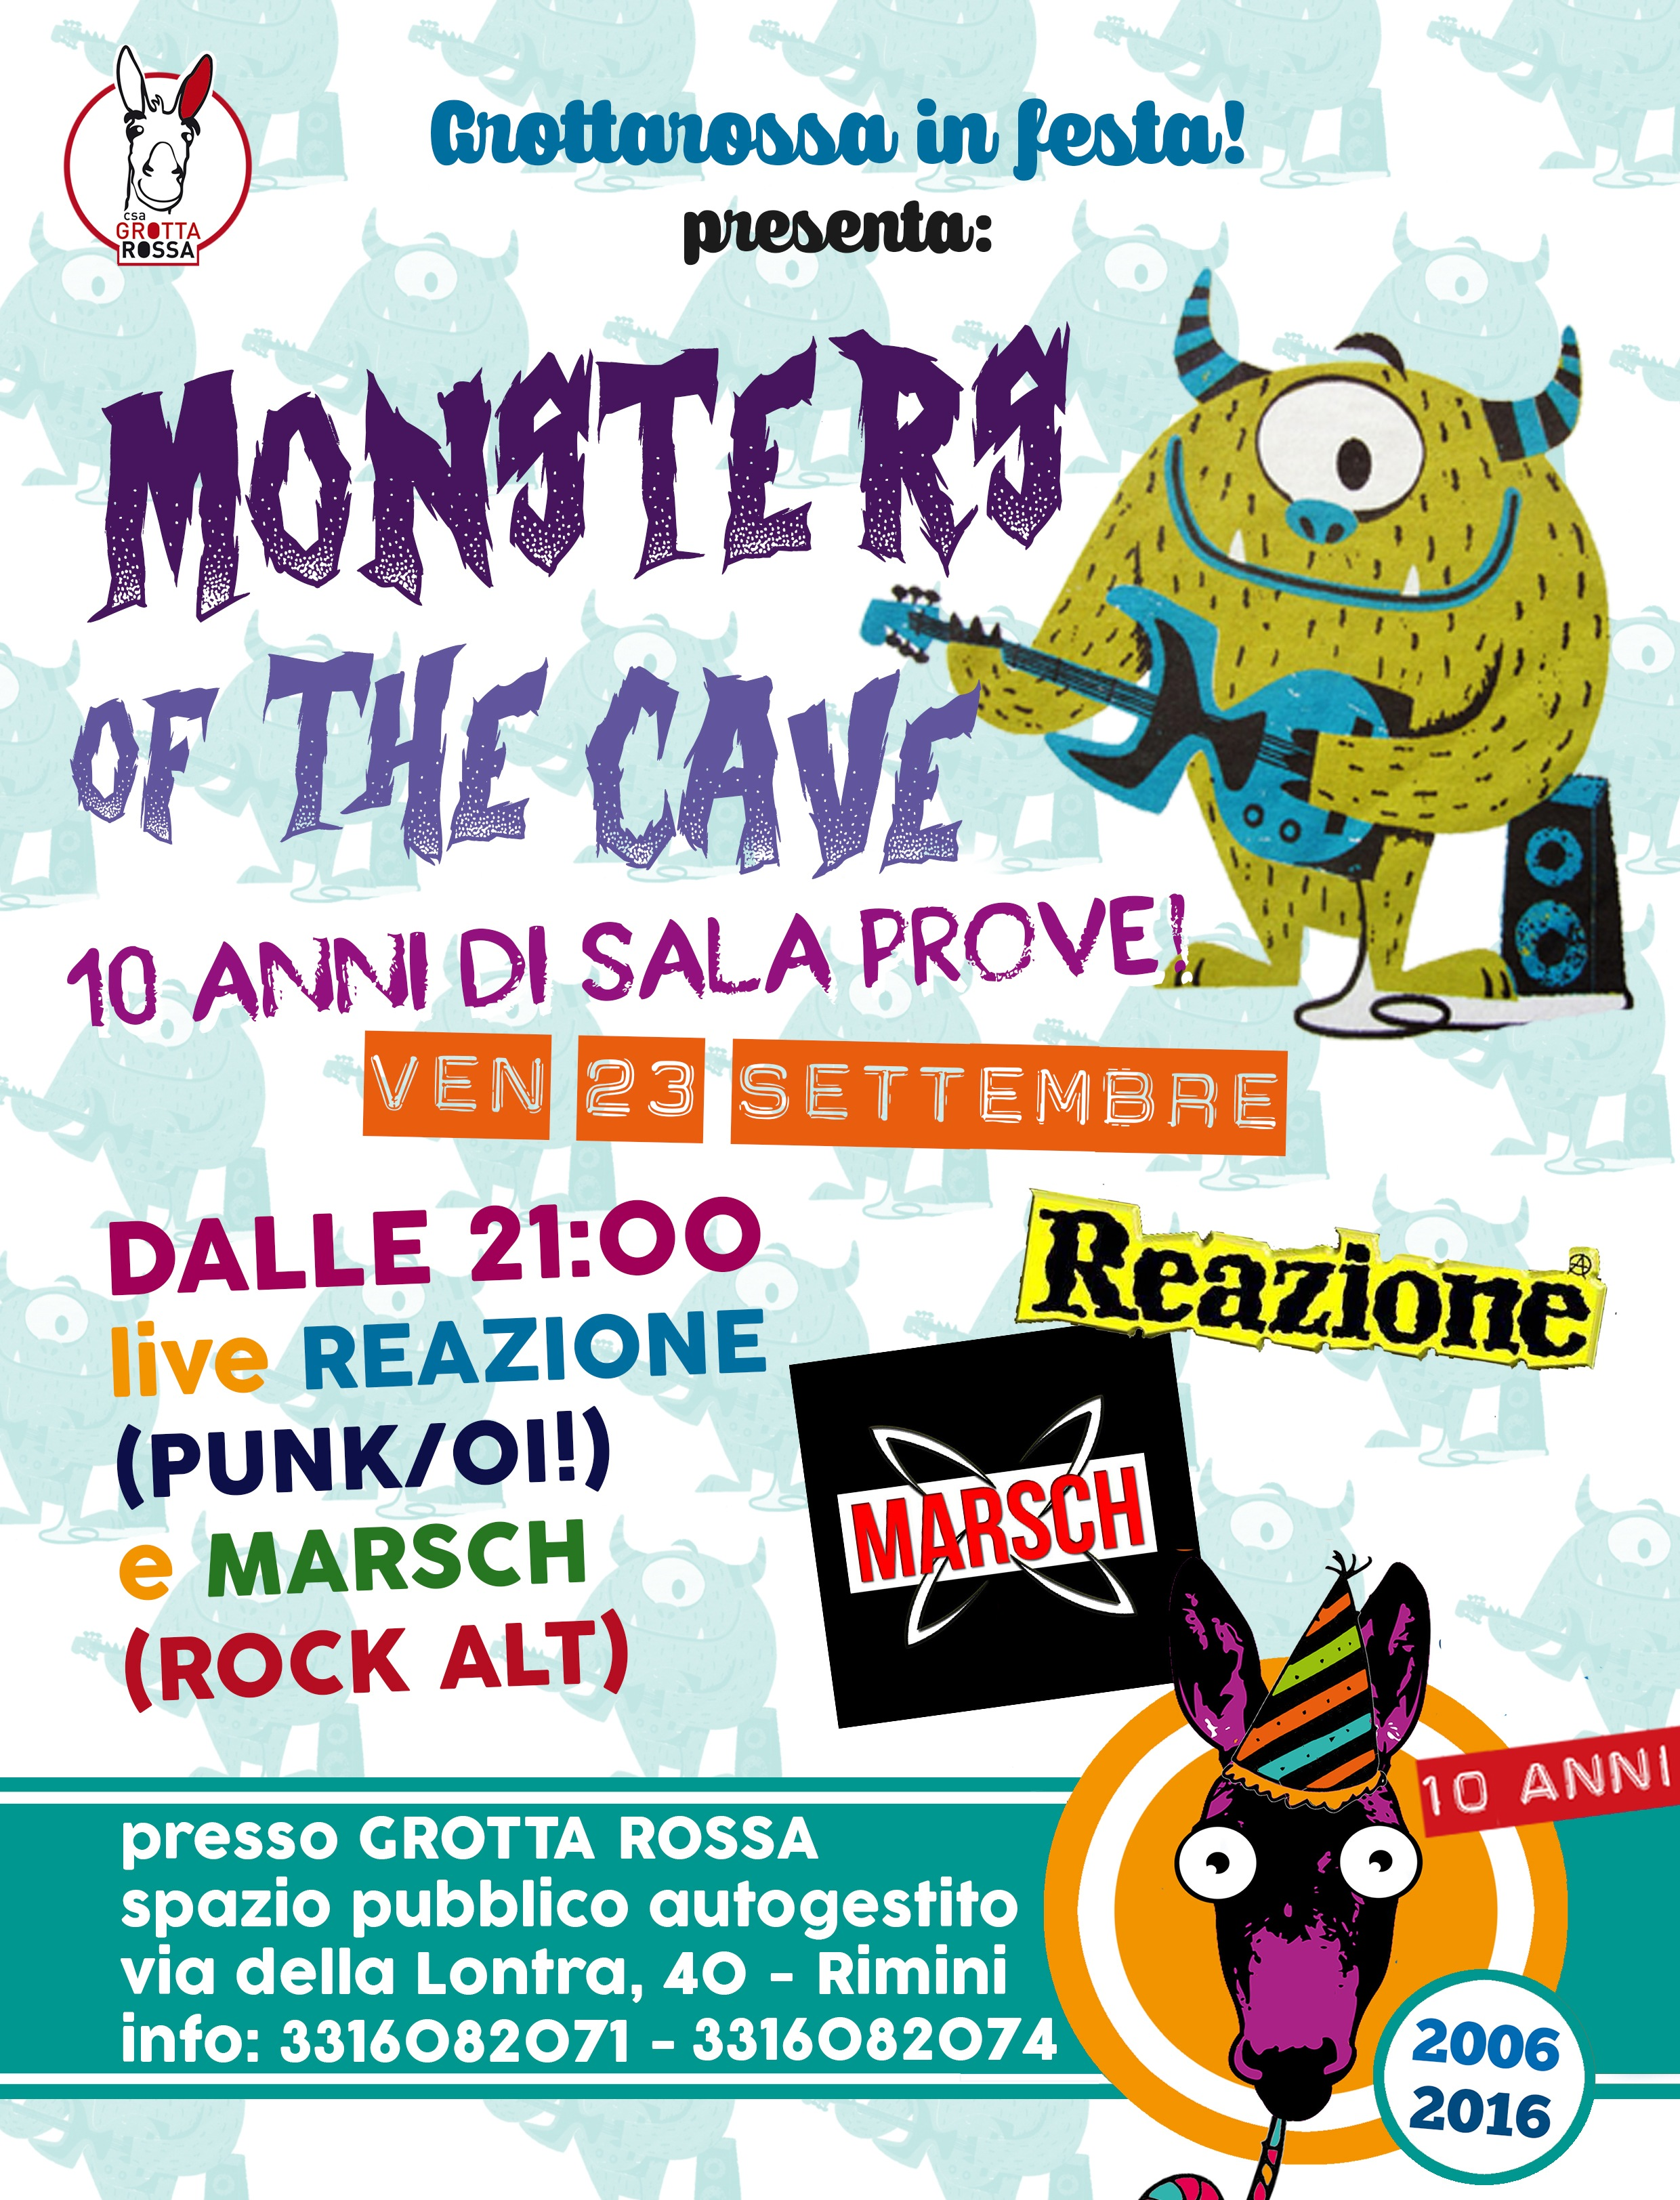 Monsters of the cave! Reazione e Marsch